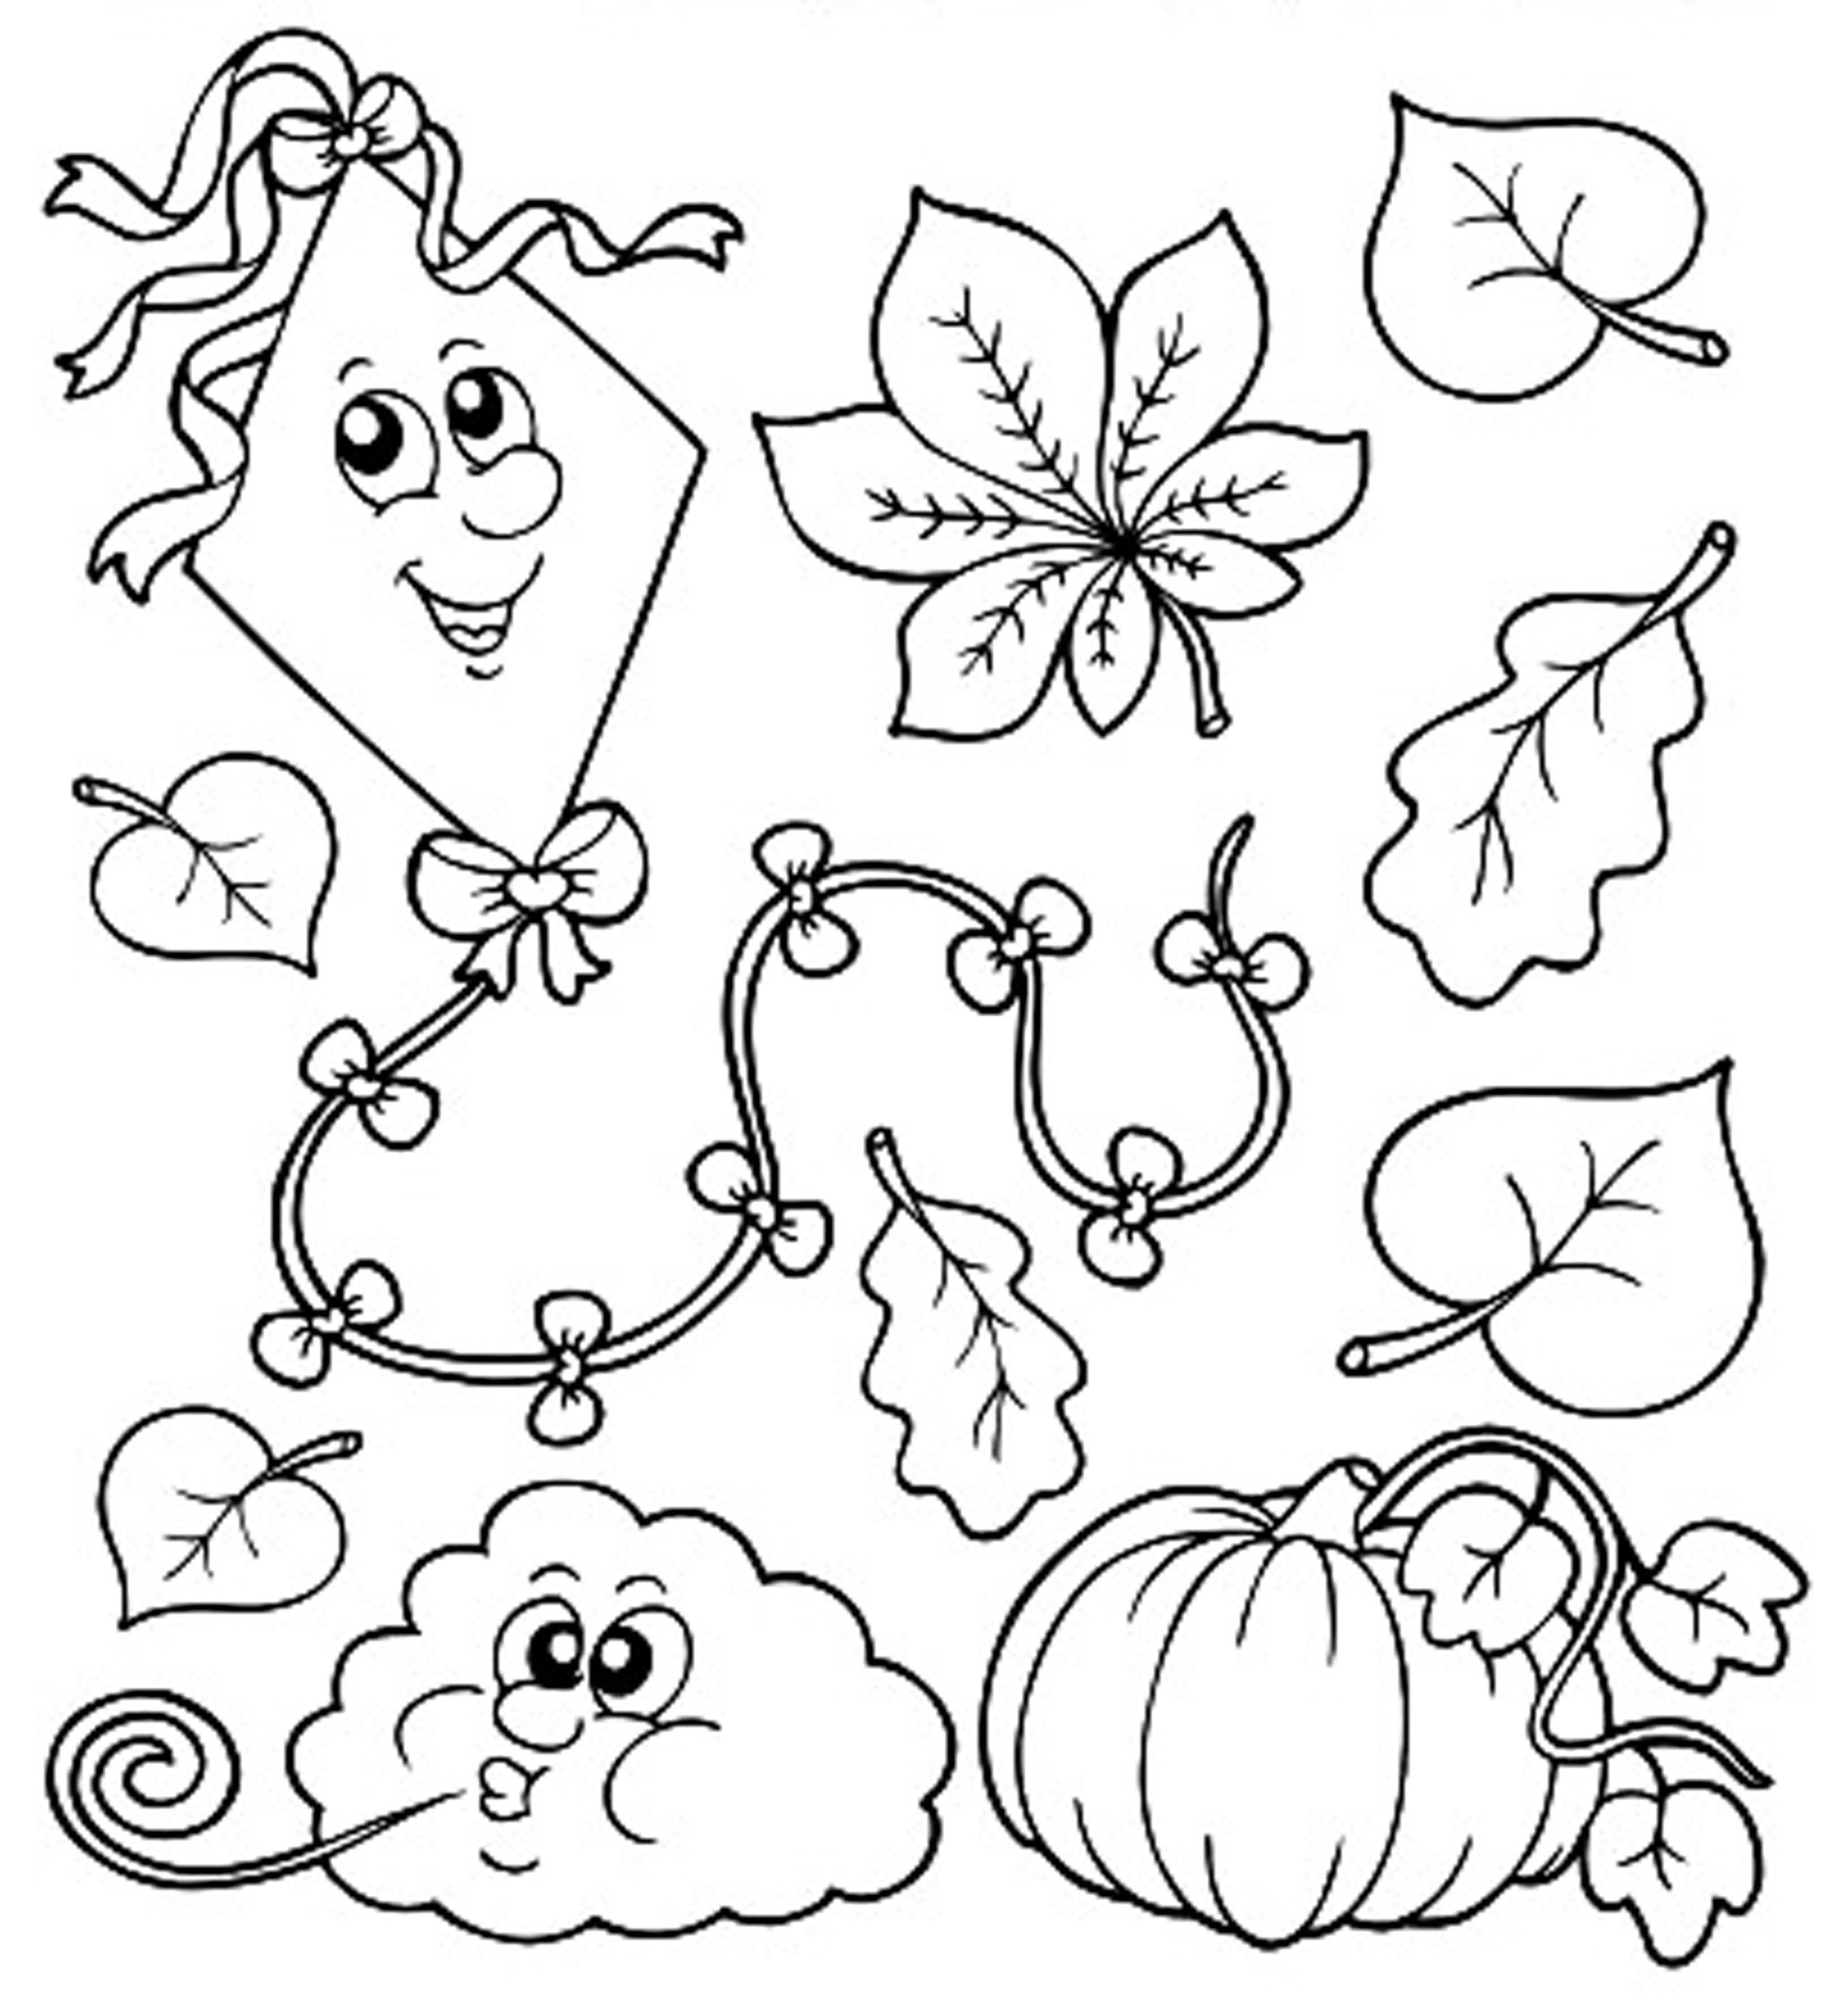 Coloring Pages For Kids Fall  Autumn Coloring Pages For Kids